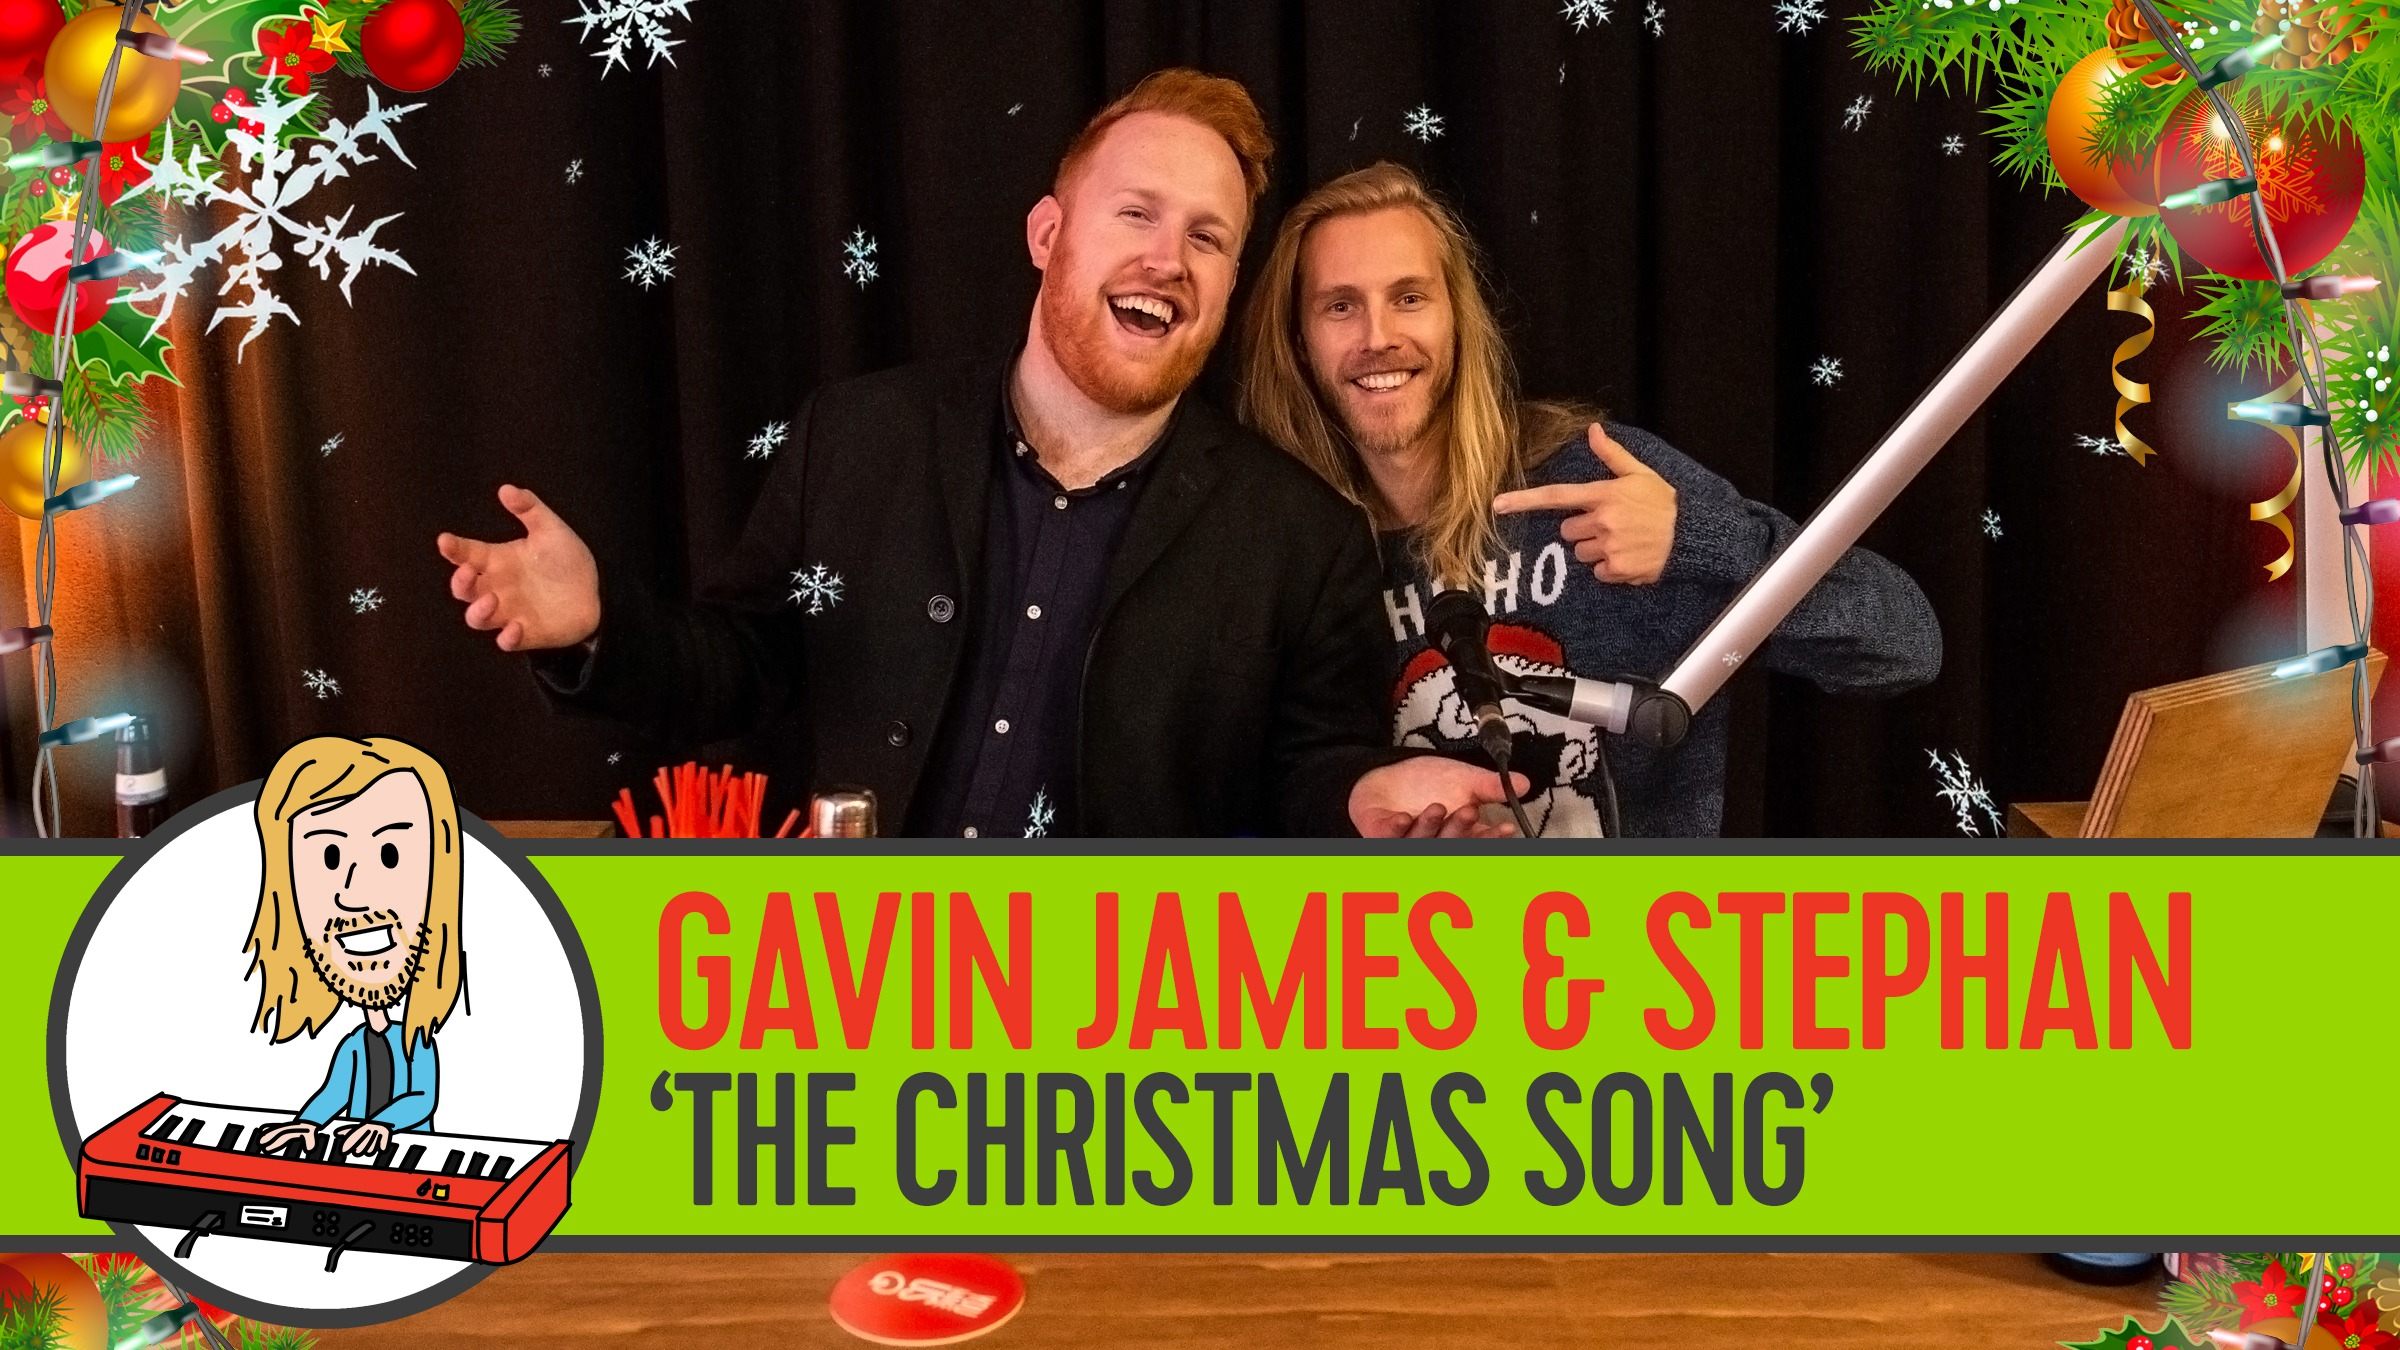 Gavin james kerst thumb kerstiger